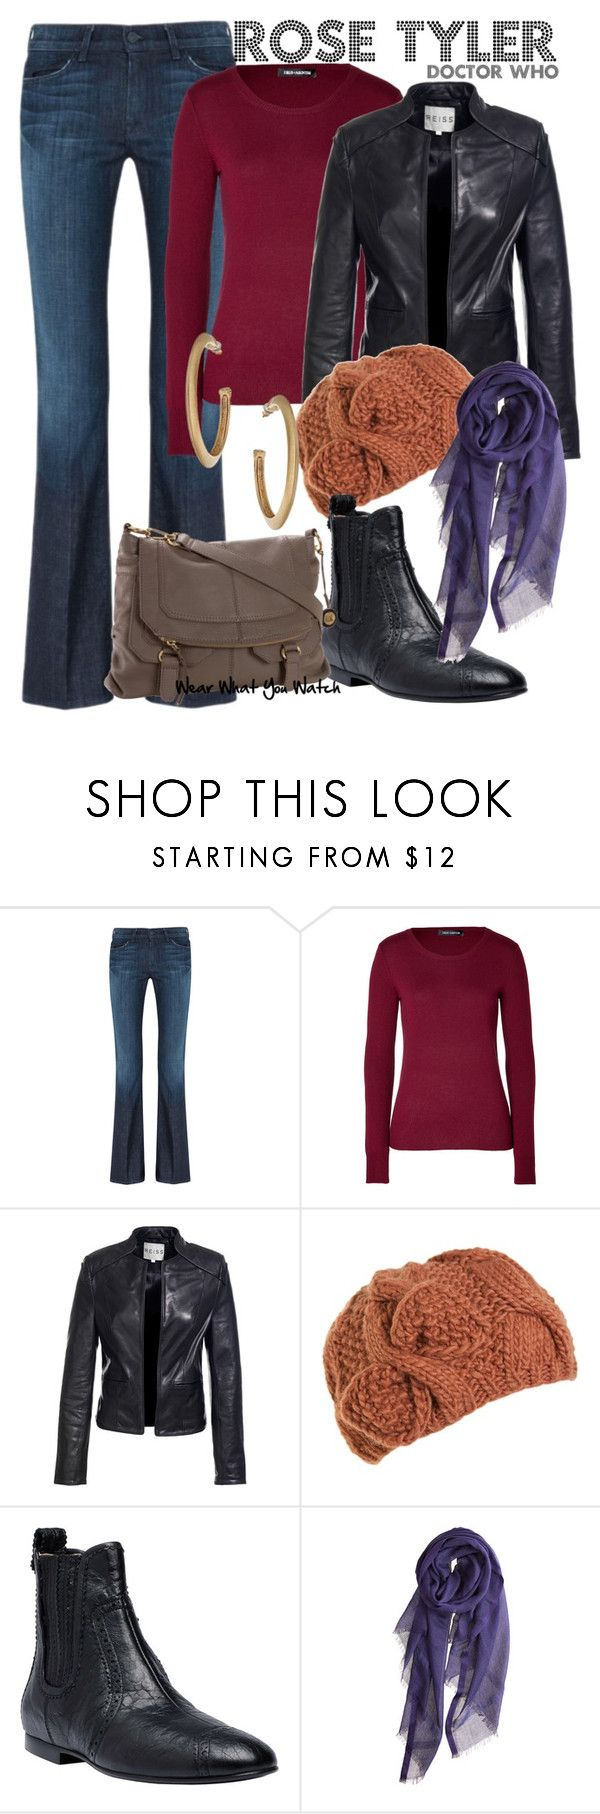 """""""Doctor Who"""" by wearwhatyouwatch ❤ liked on Polyvore featuring 7 For All Mankind, IRIS VON ARNIM, Reiss, A